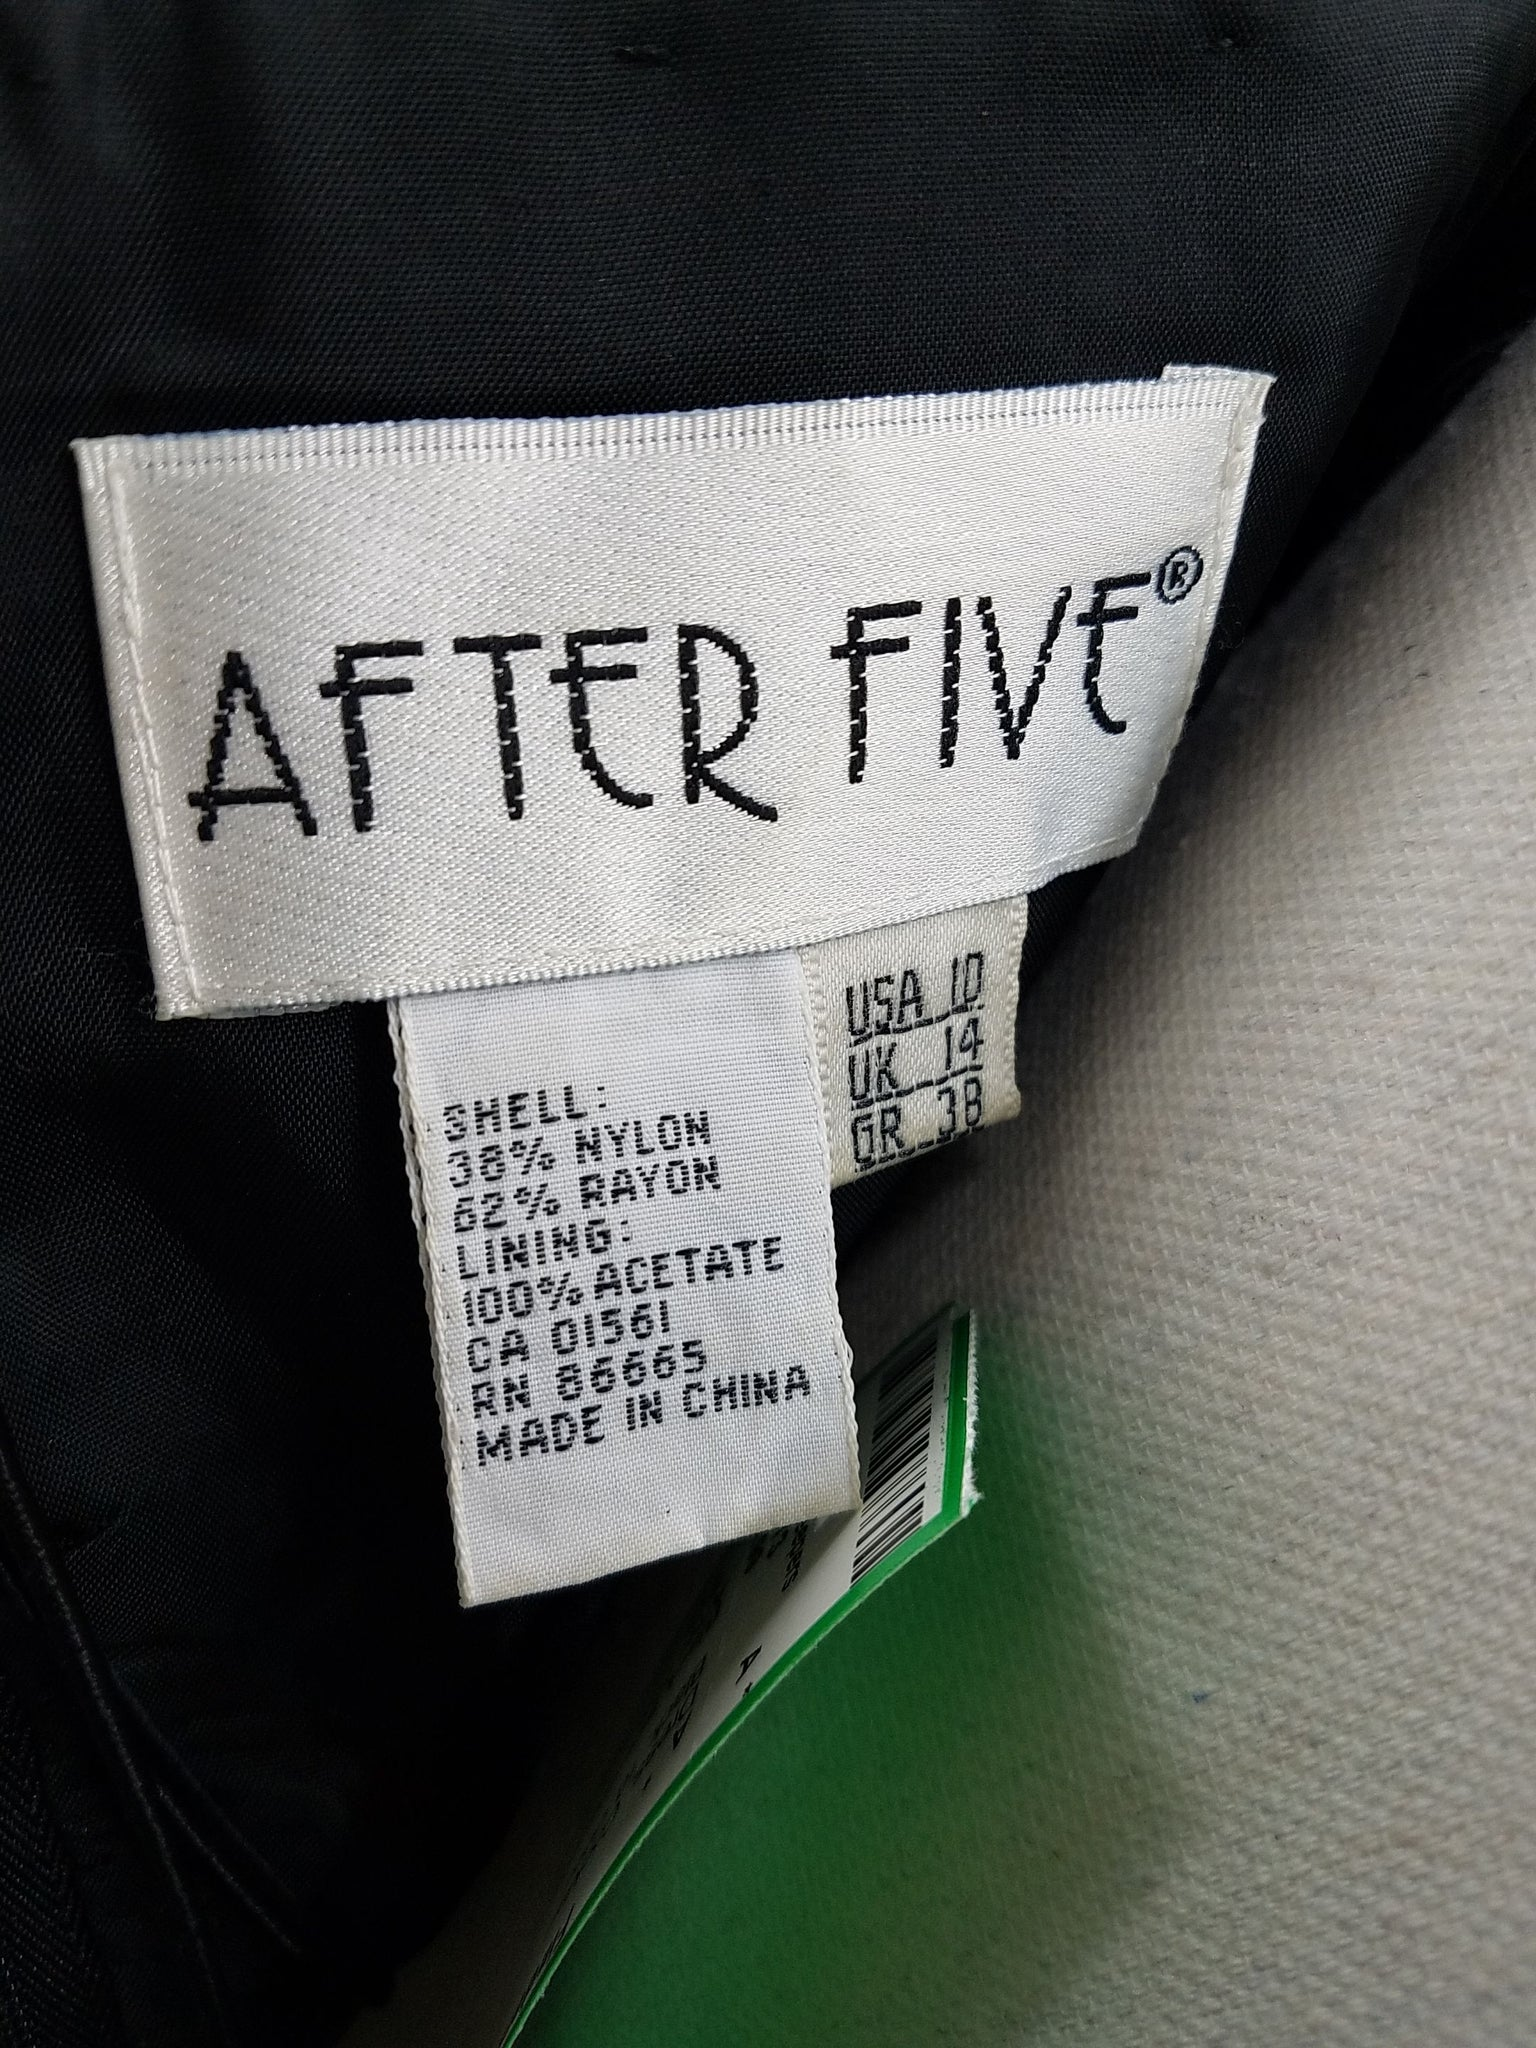 Women's After Five Black Cocktail Dress Brand Label